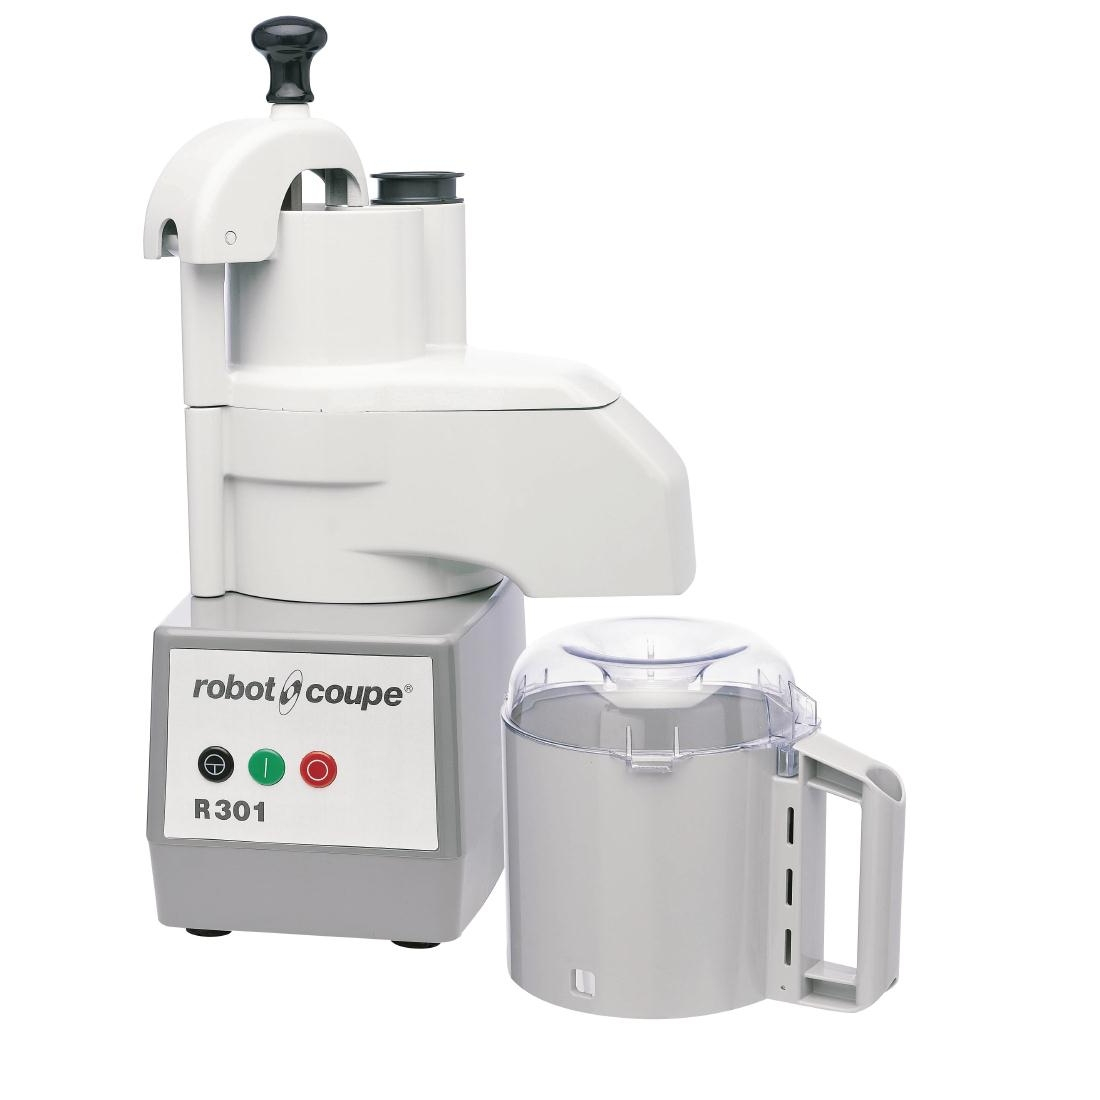 Robot Coupe Food Processor and Veg Prep Machine R301D